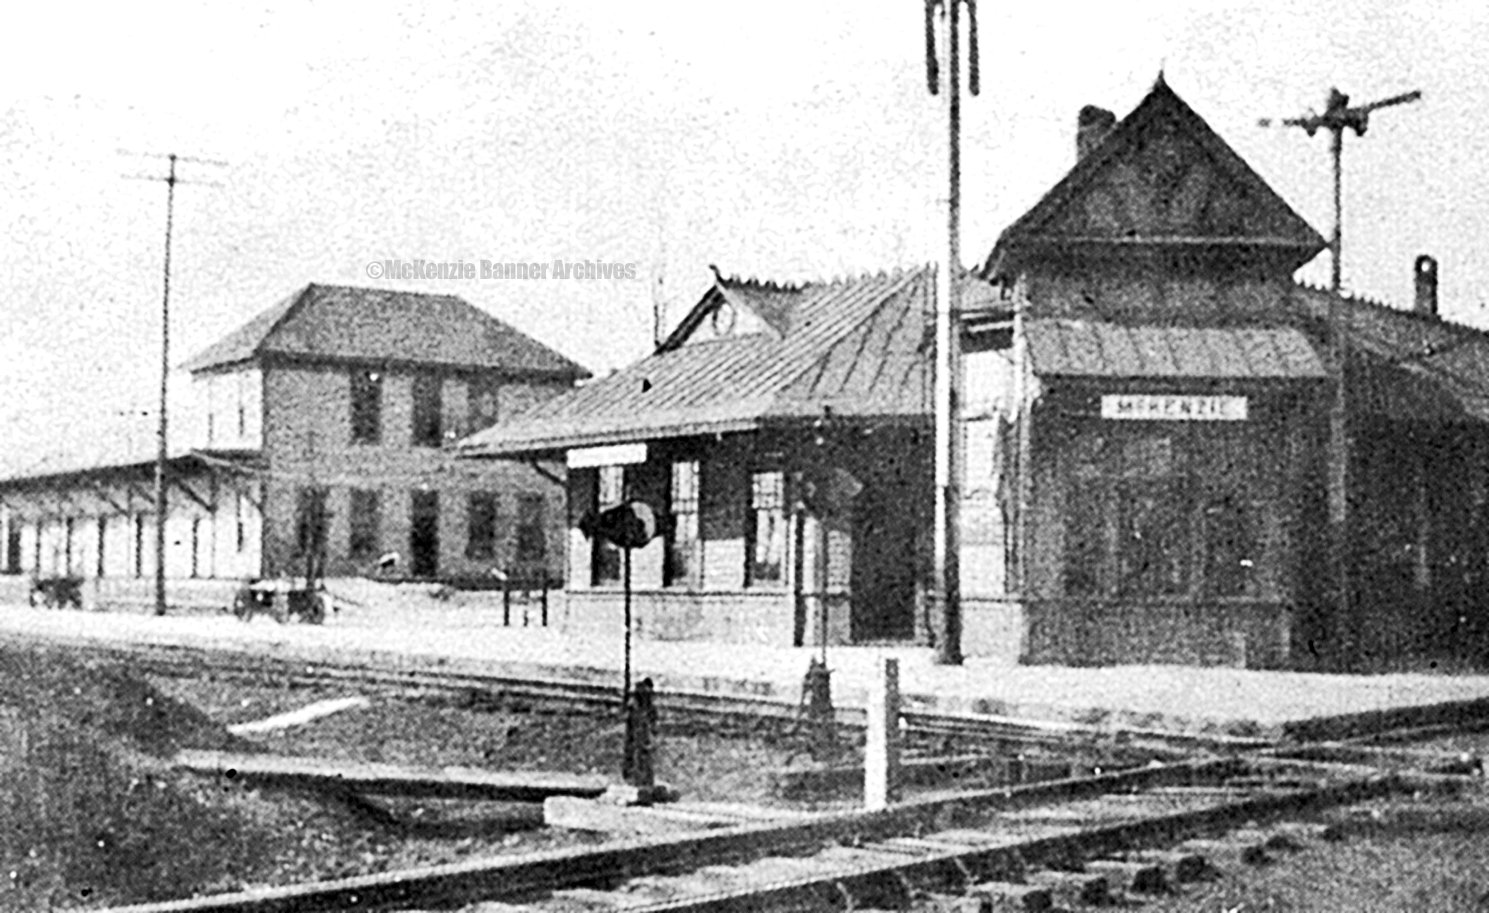 McKenzie Train Depot and Freight Loading Station in the early 1900s.